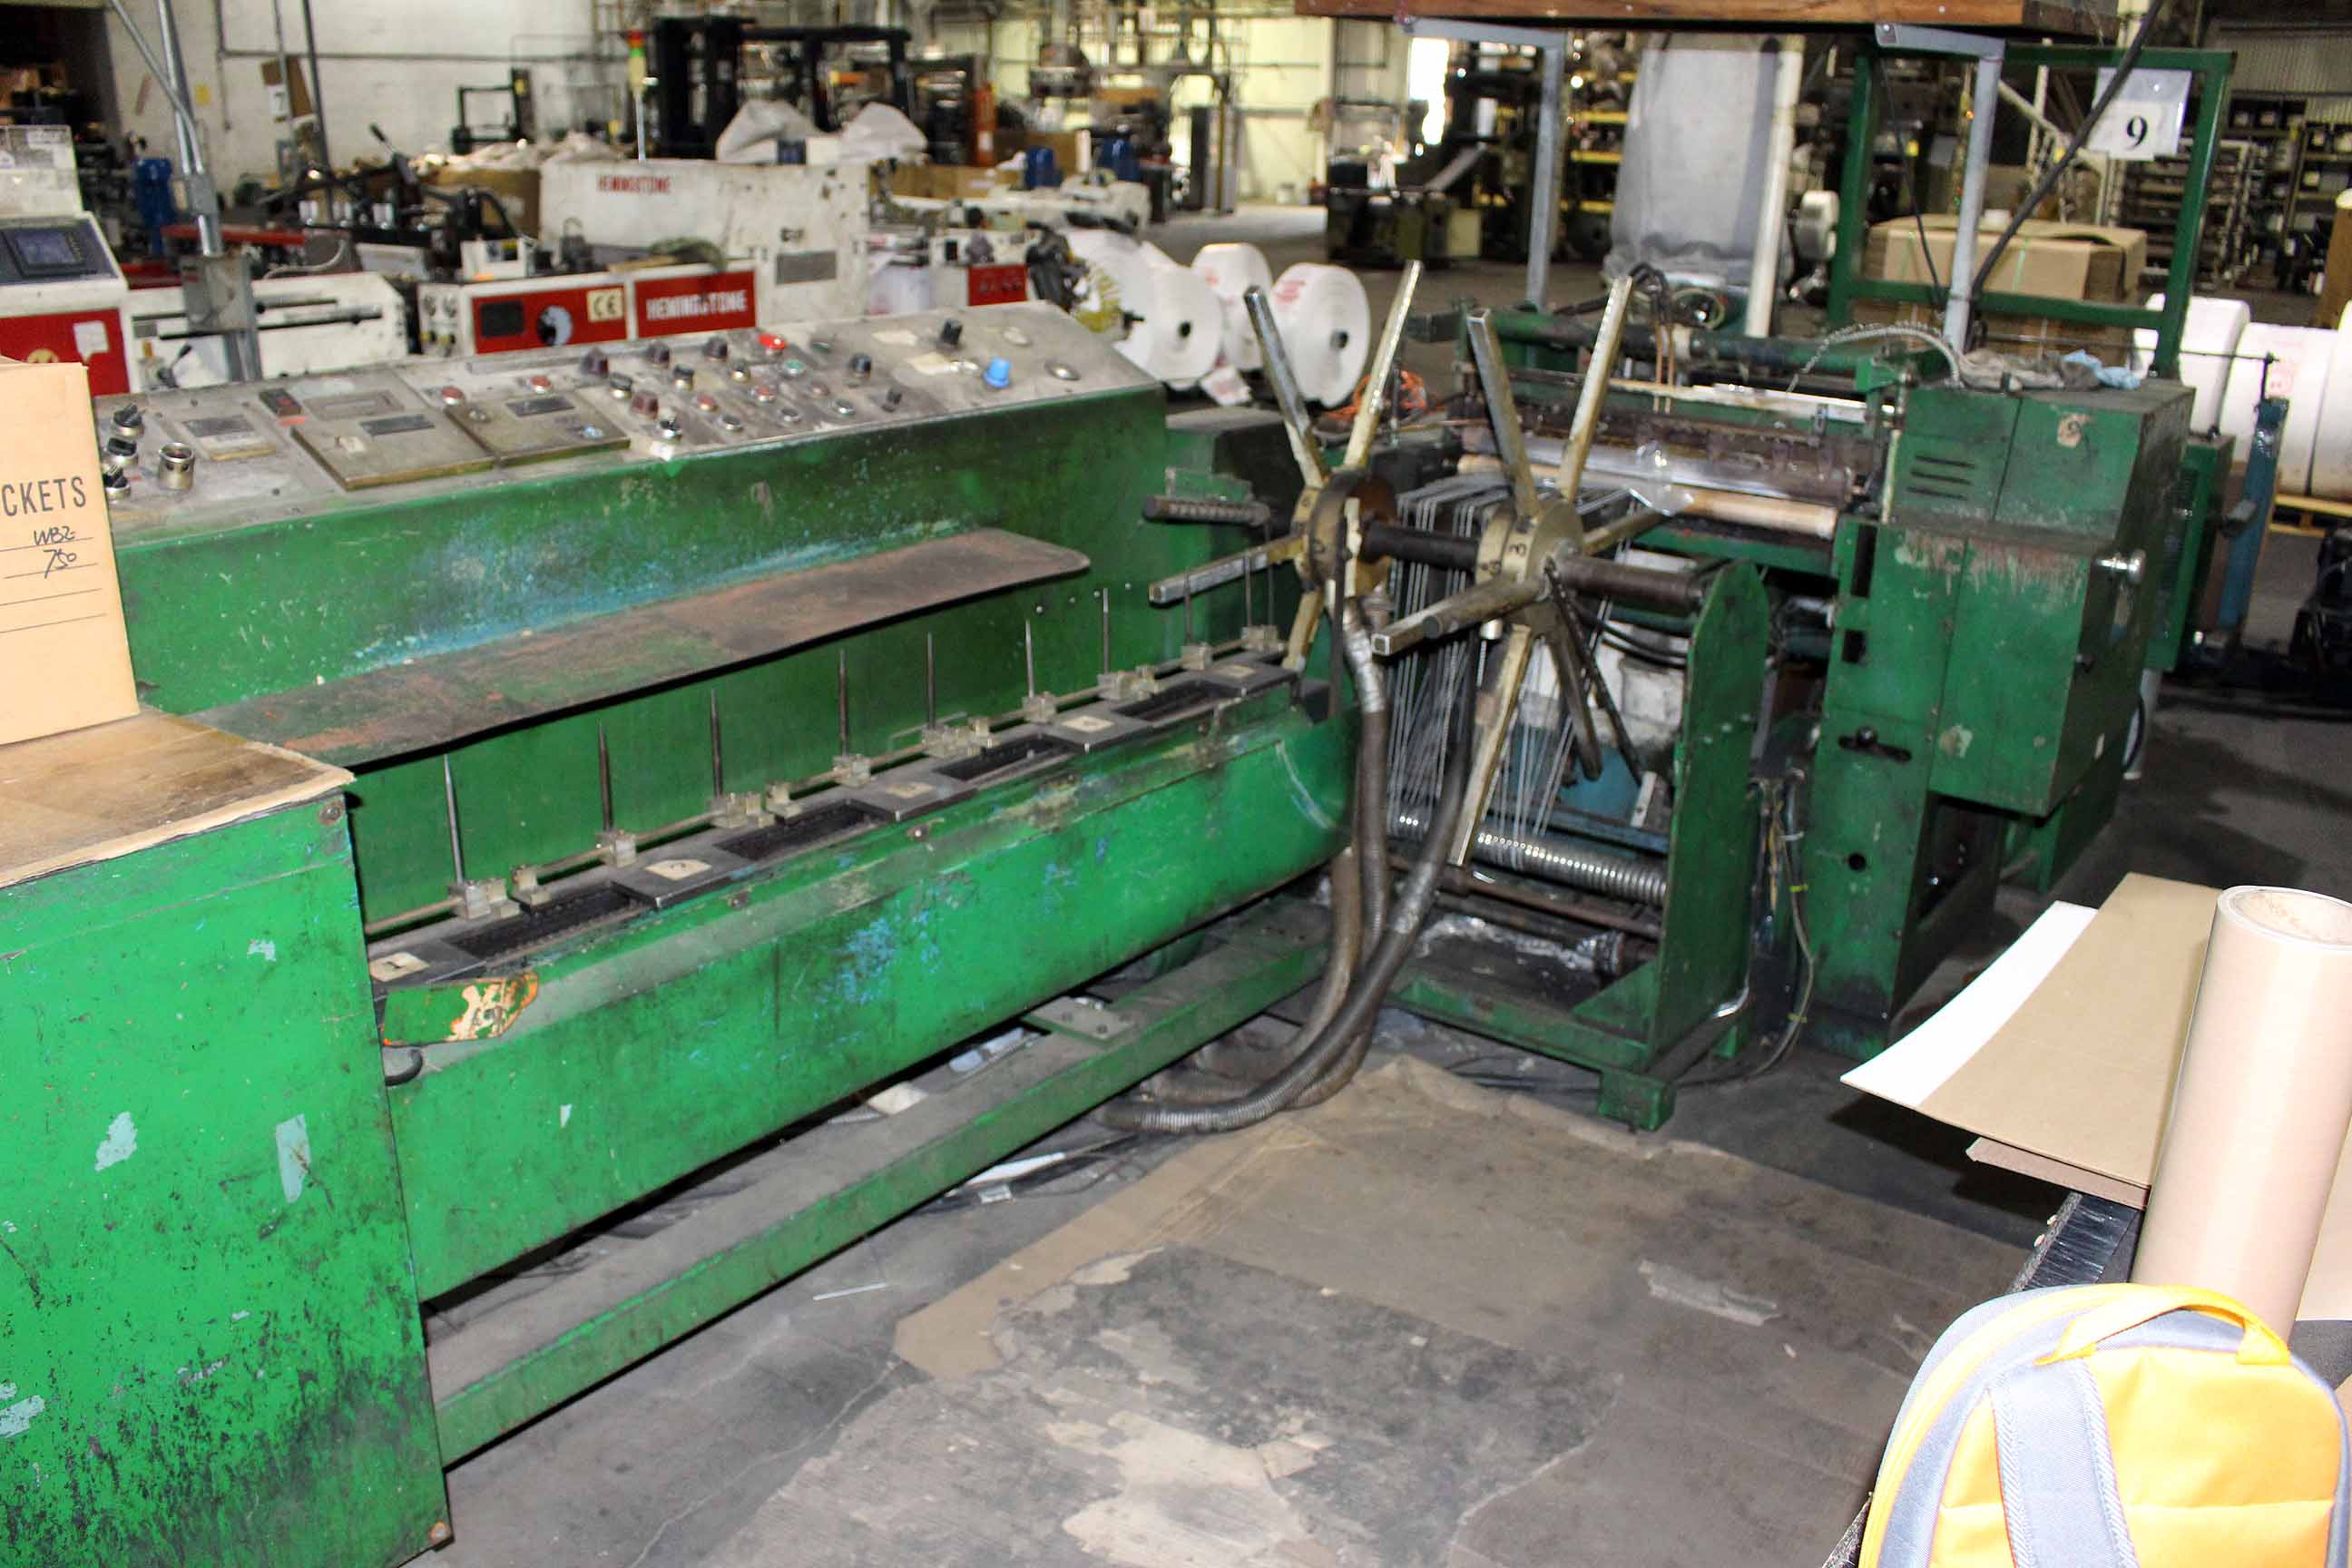 Lot 13 - WICKETER BAG MACHINE, GN PACKAGING EQUIPMENT (Line #9)